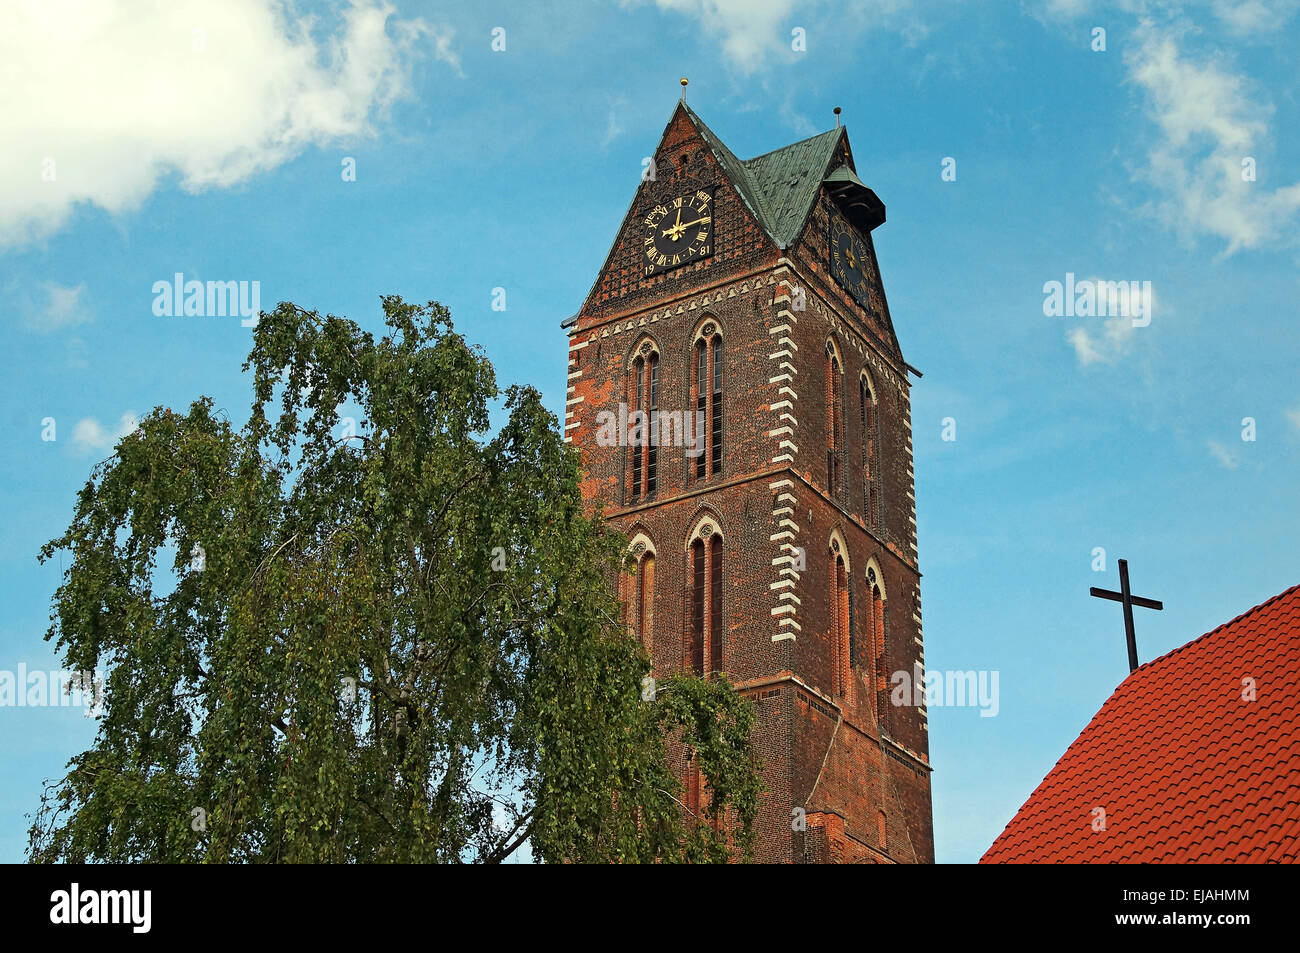 Church of St. Mary Wismar Germany - Stock Image